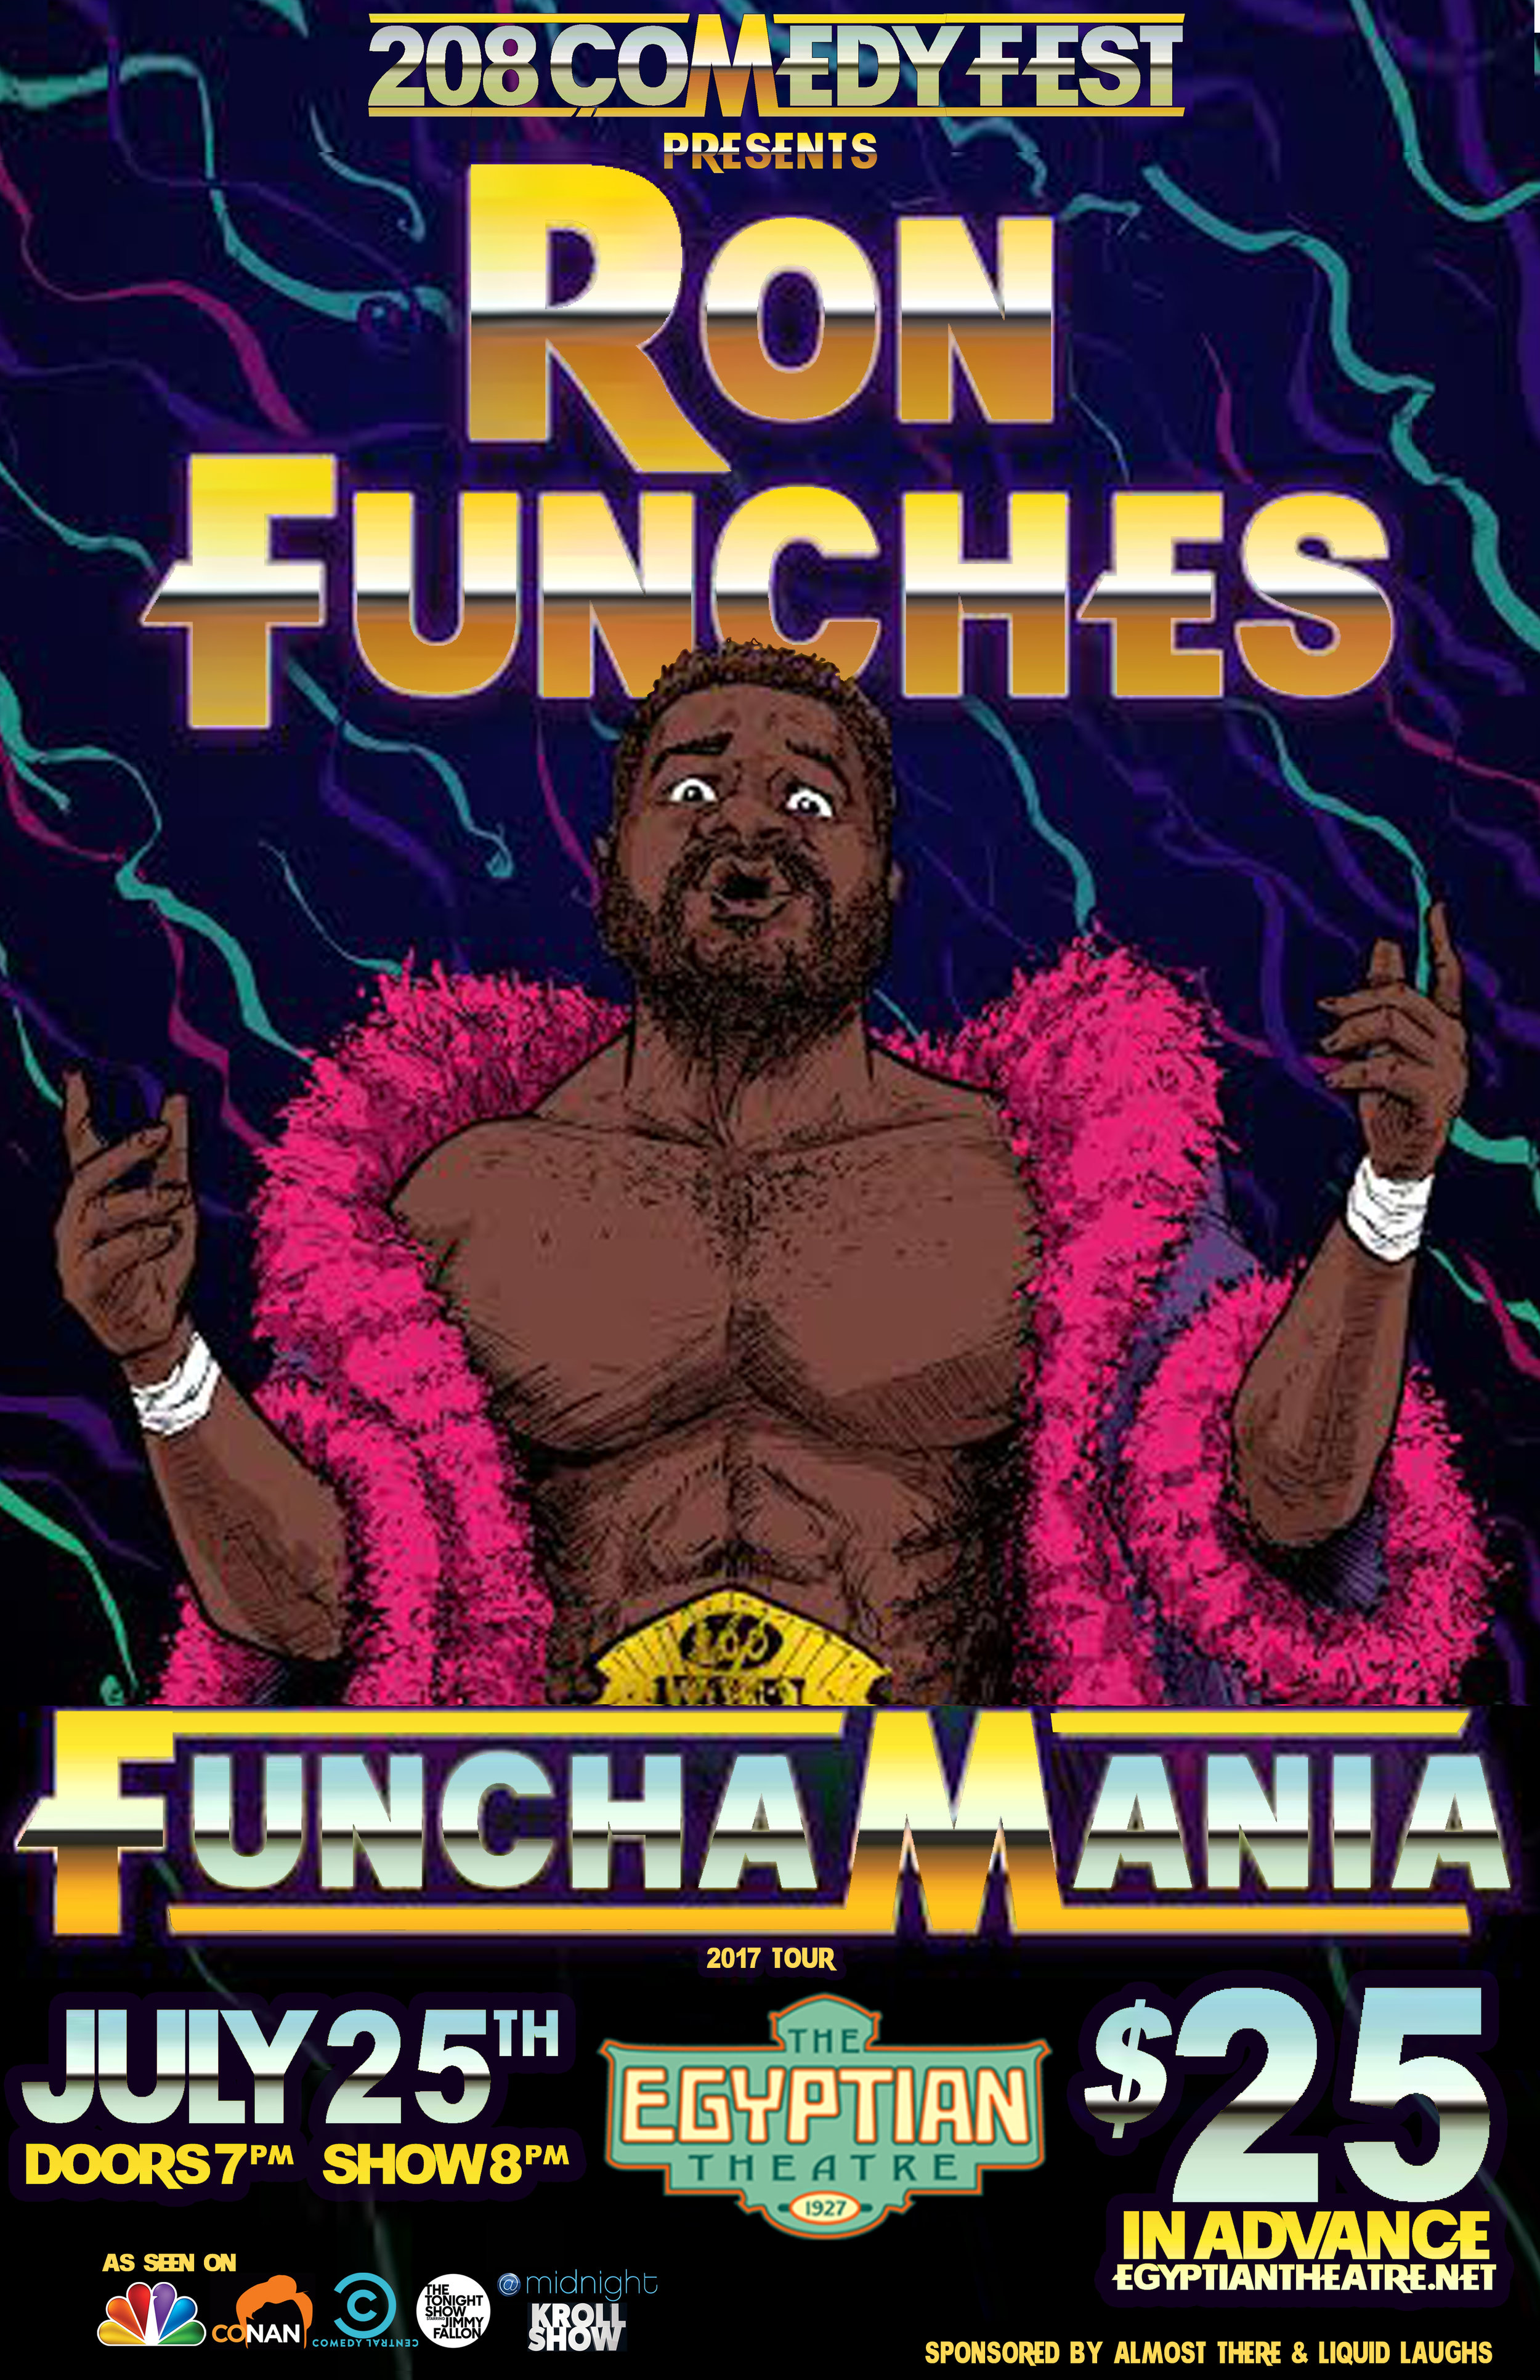 The 208 COMEDY FEST presents…  - Ron Funches: FUNCH-A-MANIA! In Boise July 25th at The Egyptian TheatreRon Funches brings his FUNCHAMANIA 2017 tour to the Egyptian Theatre in downtown Boise for one night only – July 25th, 2017Tickets are $25 in advance / $30 at the door.orGet a ticket to FUNCH-A-MANIA in Boise for only $5 when you purchase an EARLY BIRD Festival Pass to the 208 COMEDY FEST